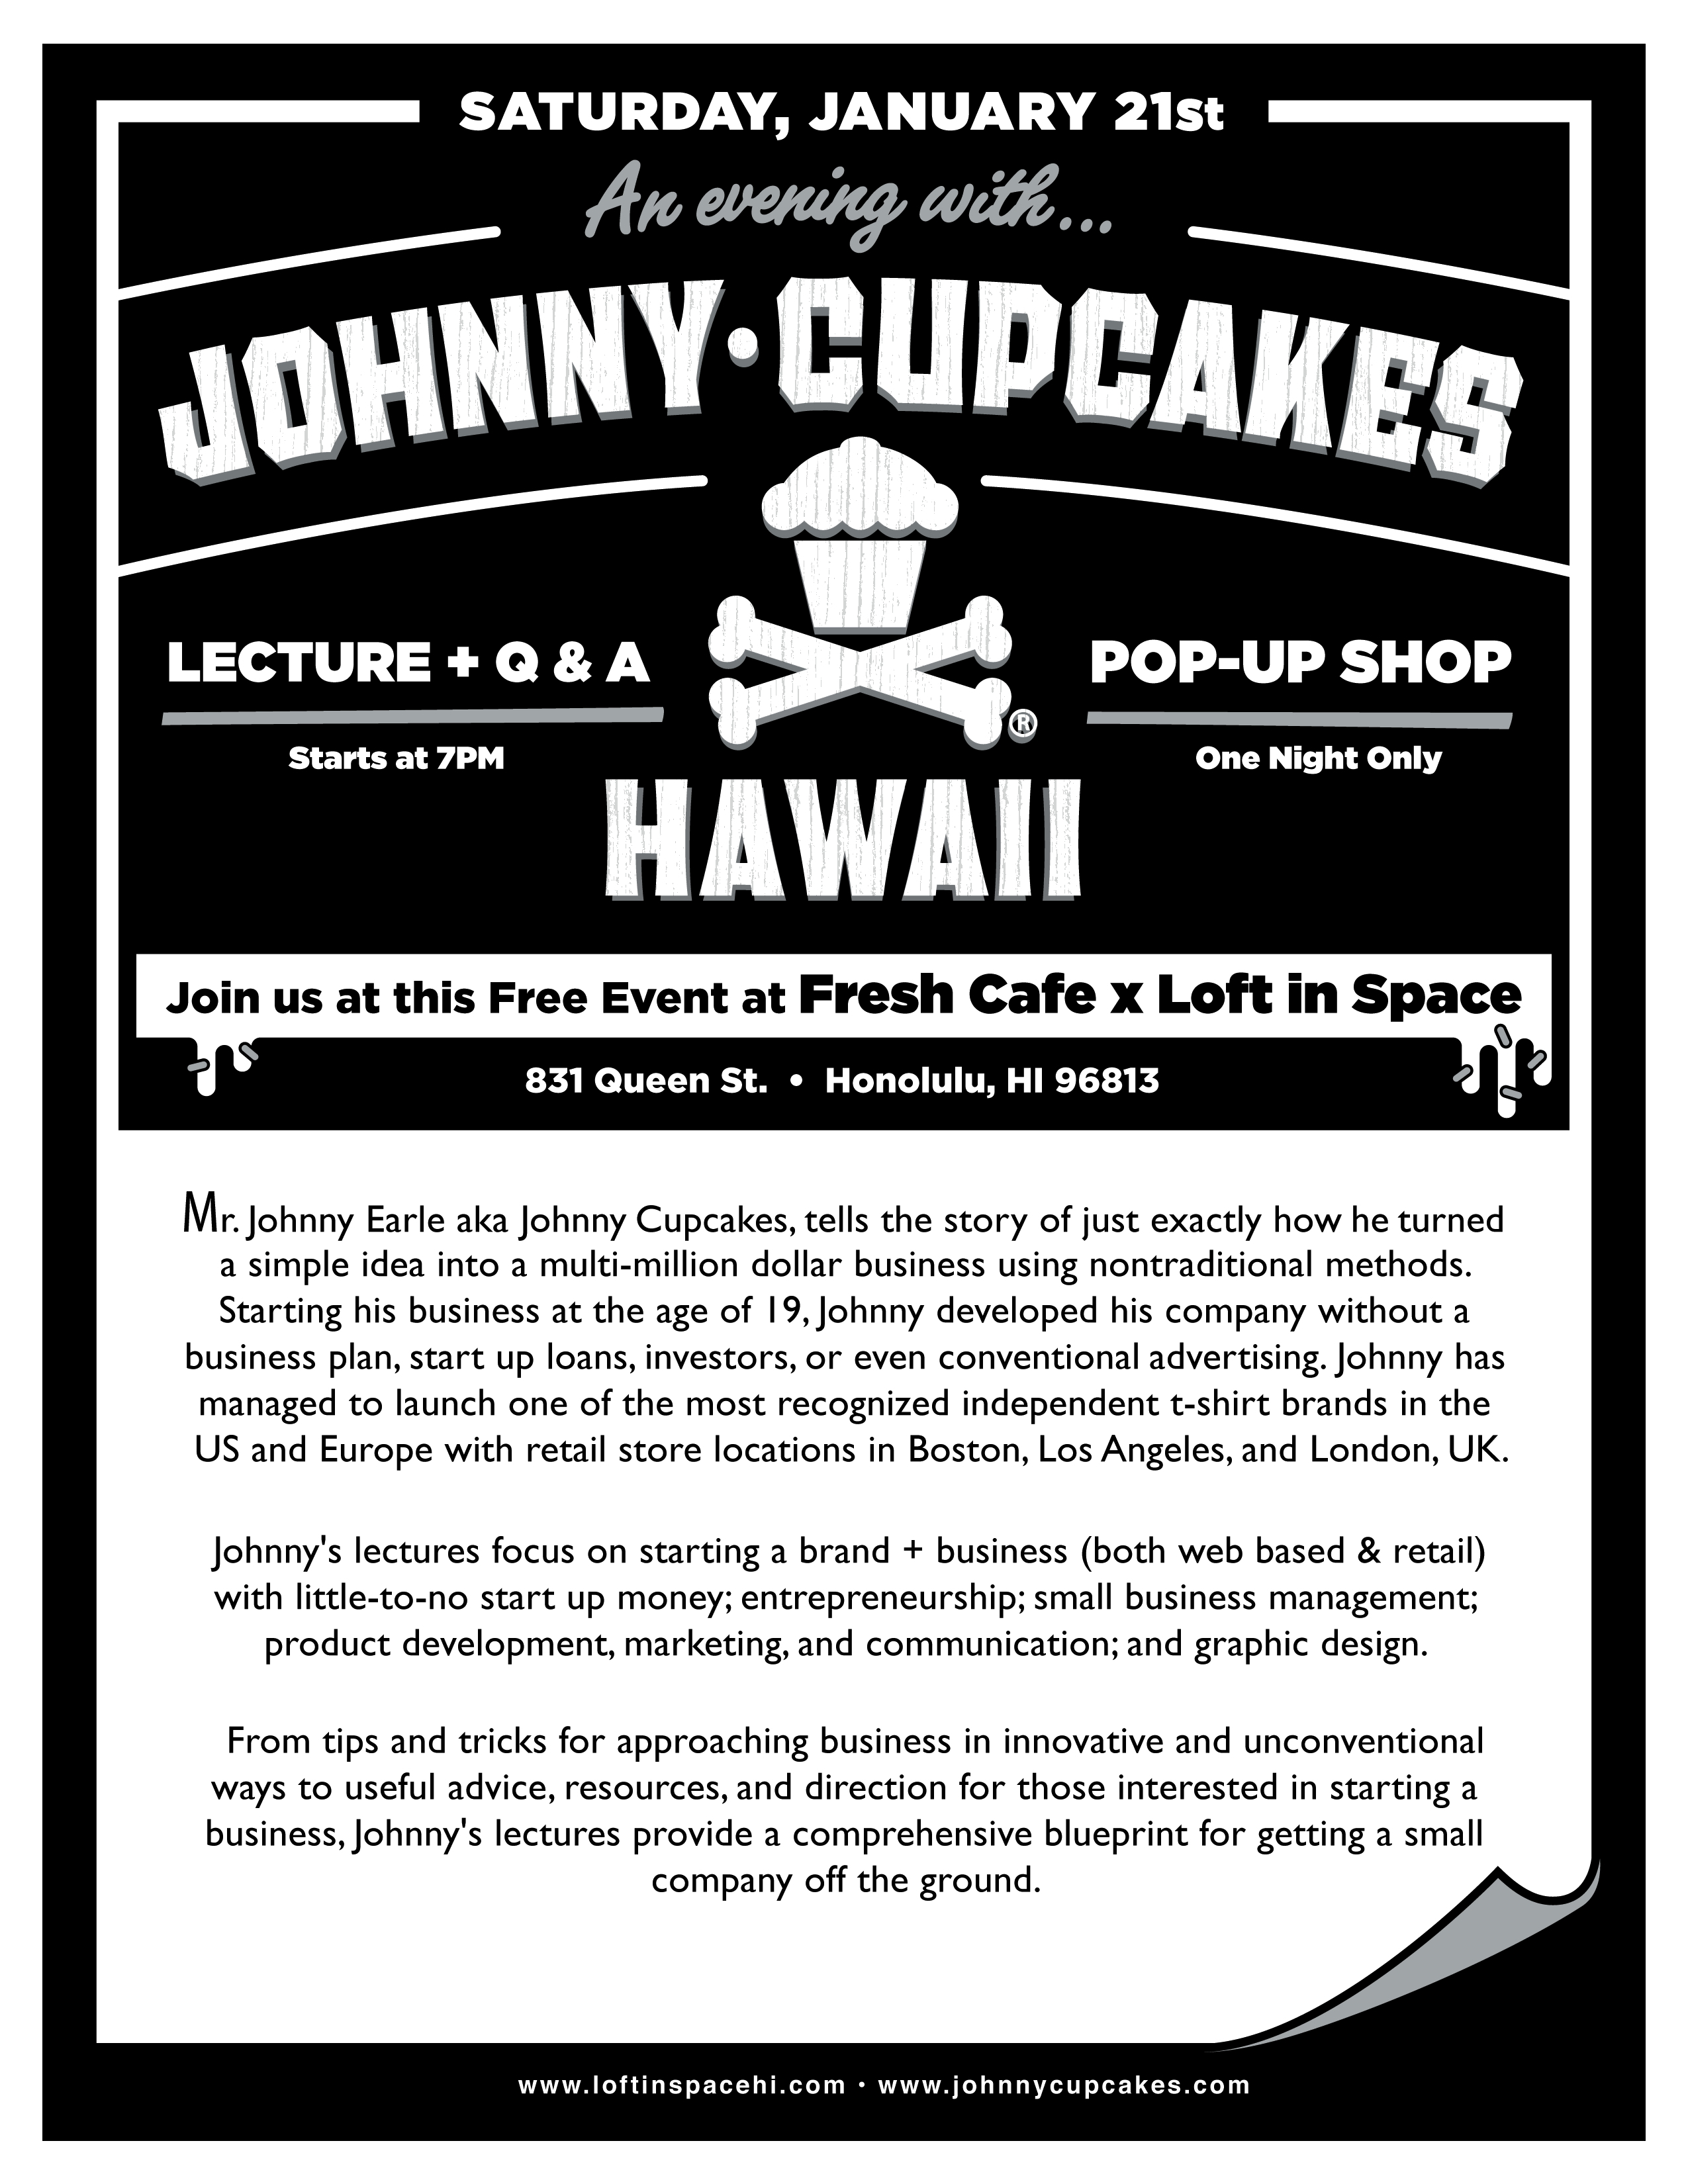 Johnny cupcakes in hawaii malvernweather Image collections